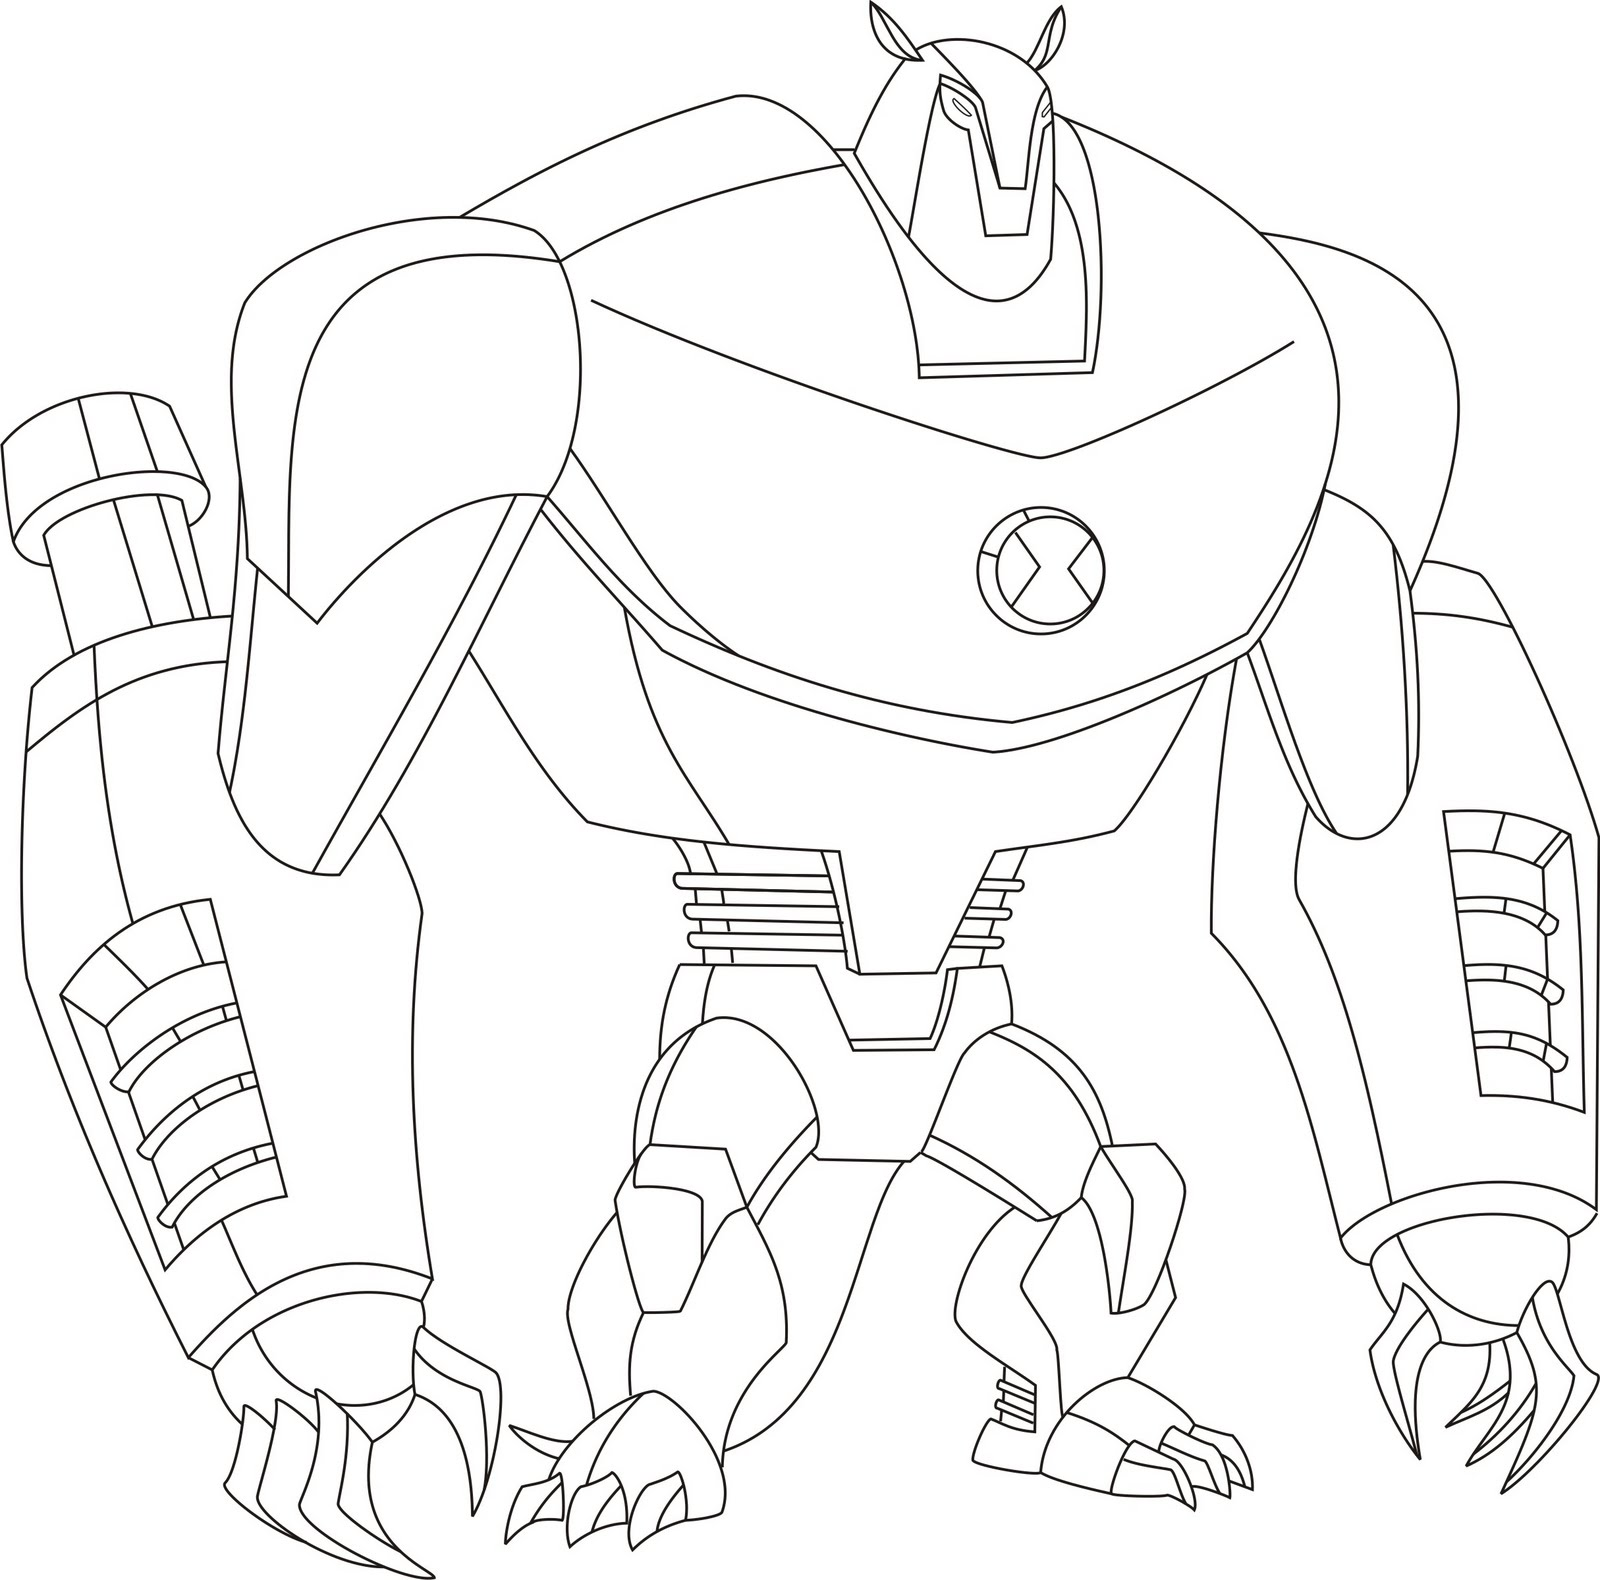 ben 10 coloring pages - photo#20